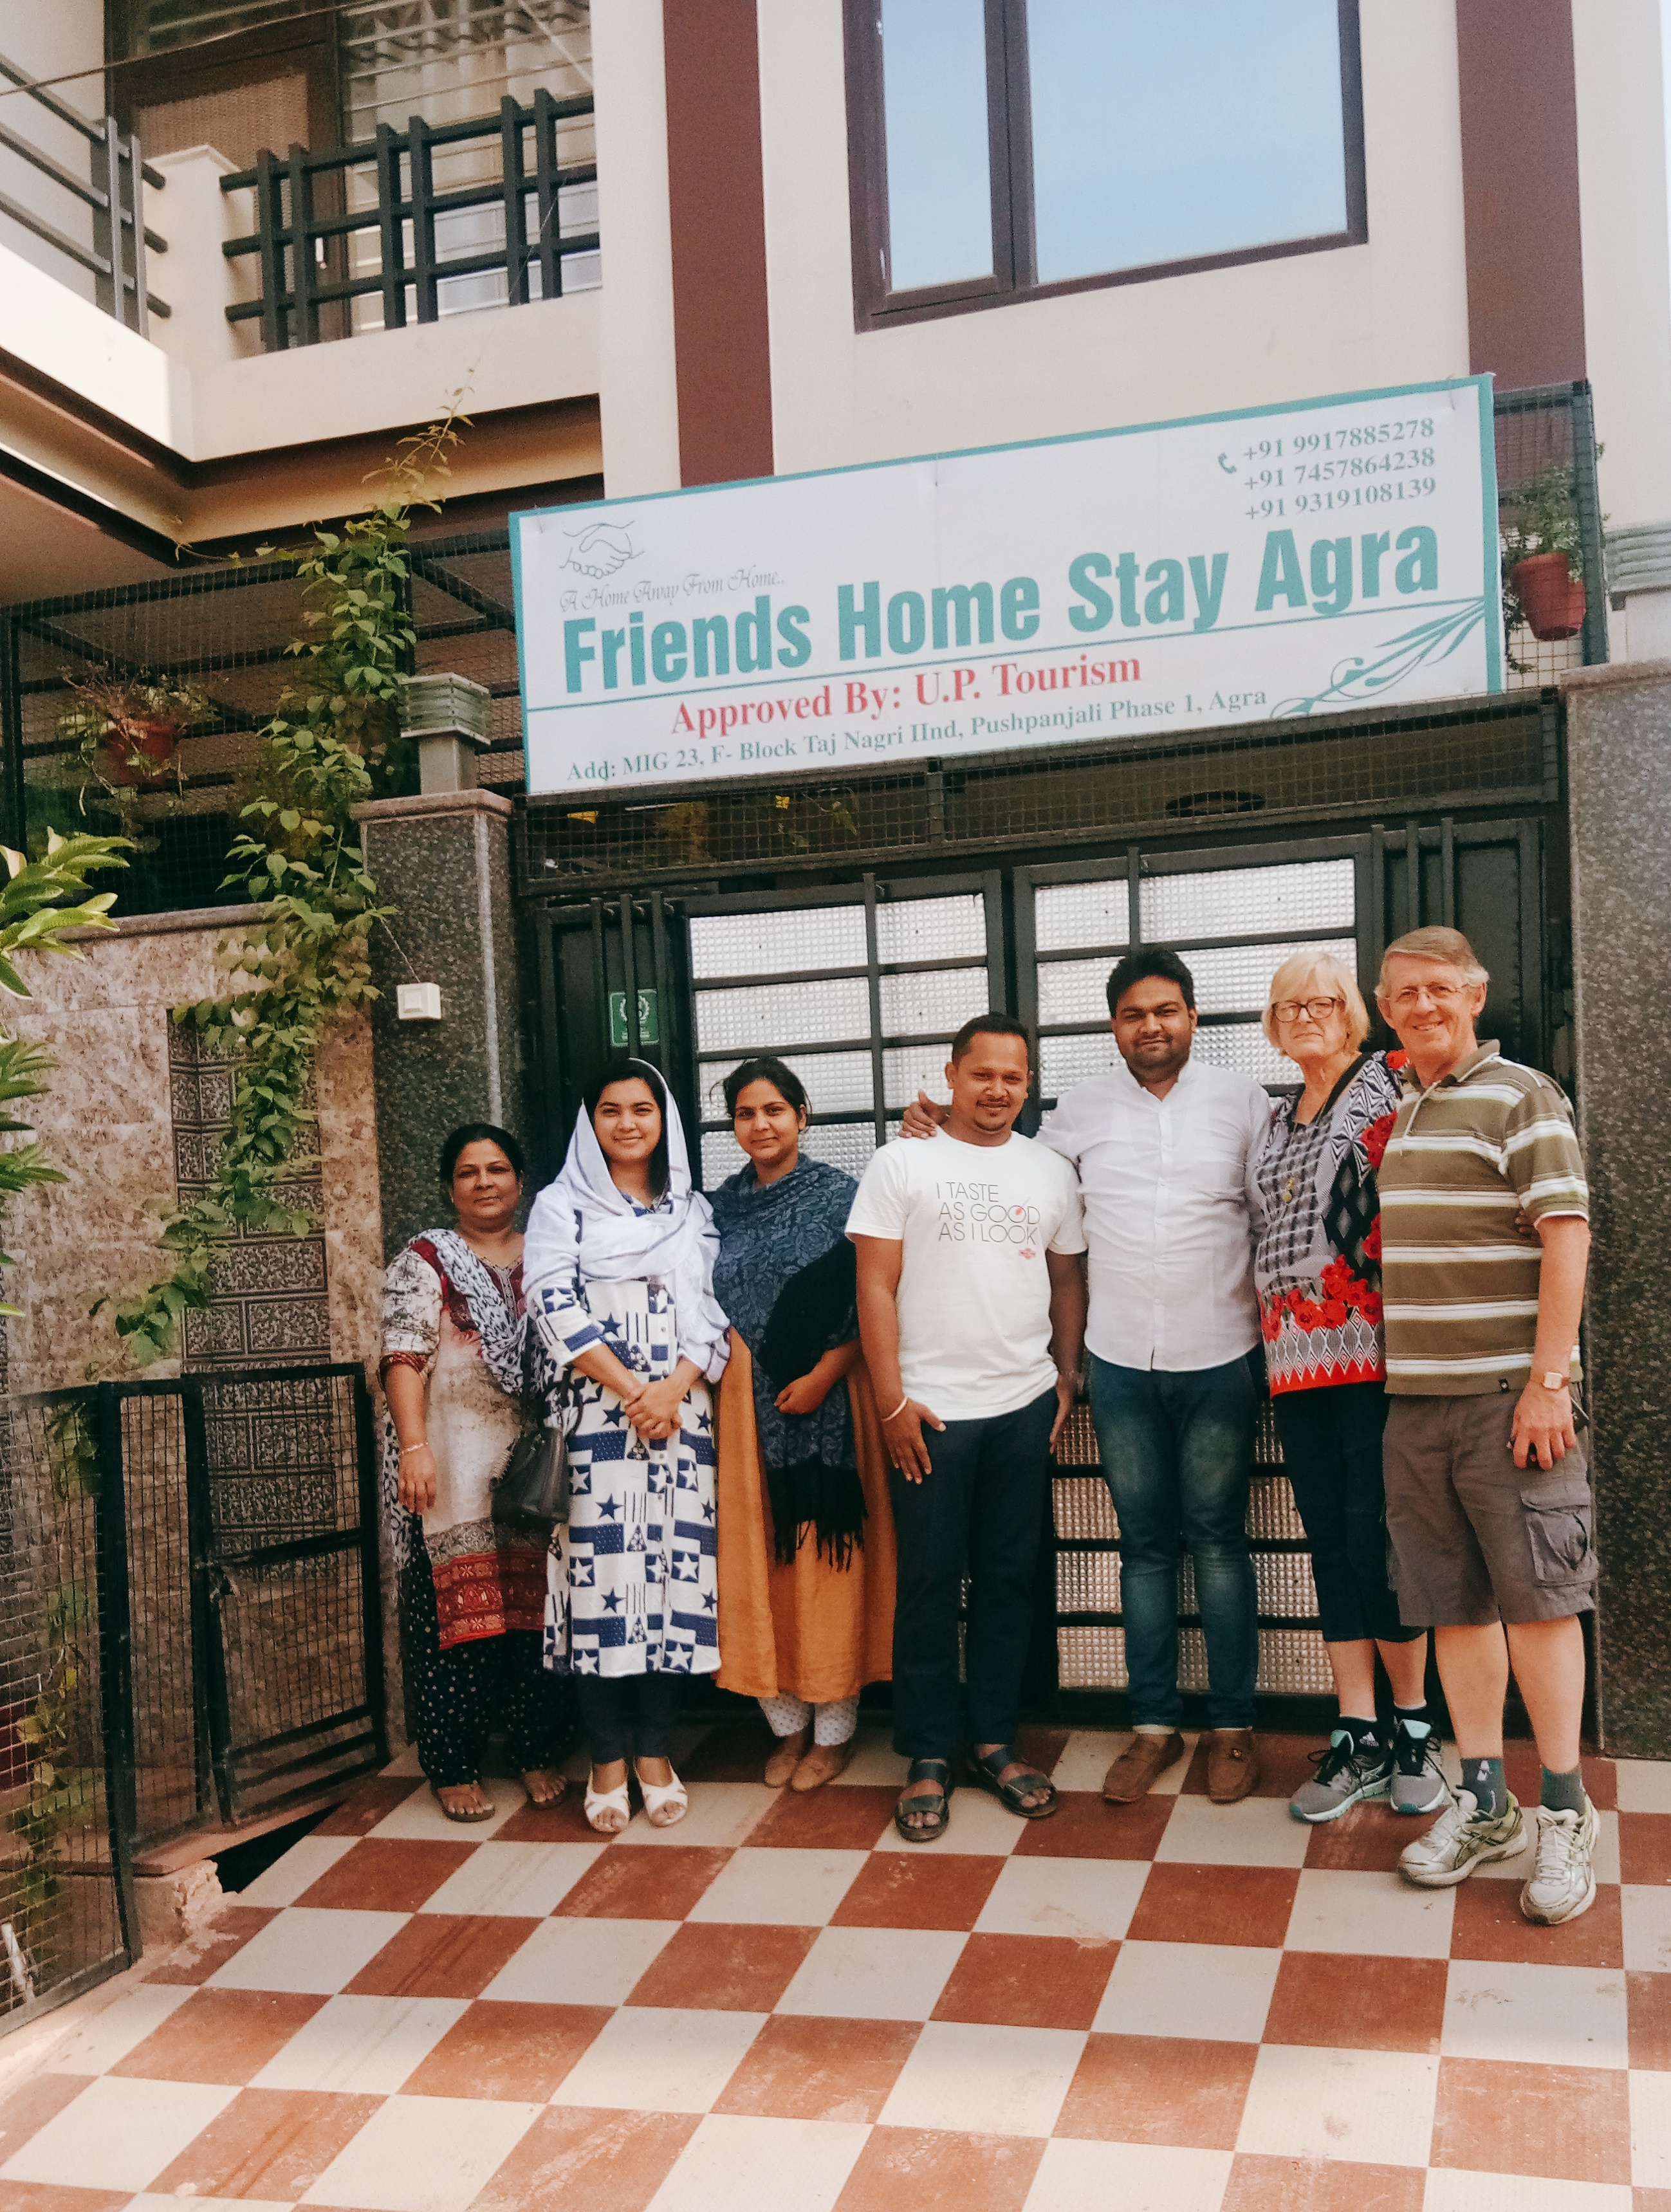 Non Ac Twin Bed Room with fan, FRIENDS HOME STAY AGRA - Budget Hotels in Agra